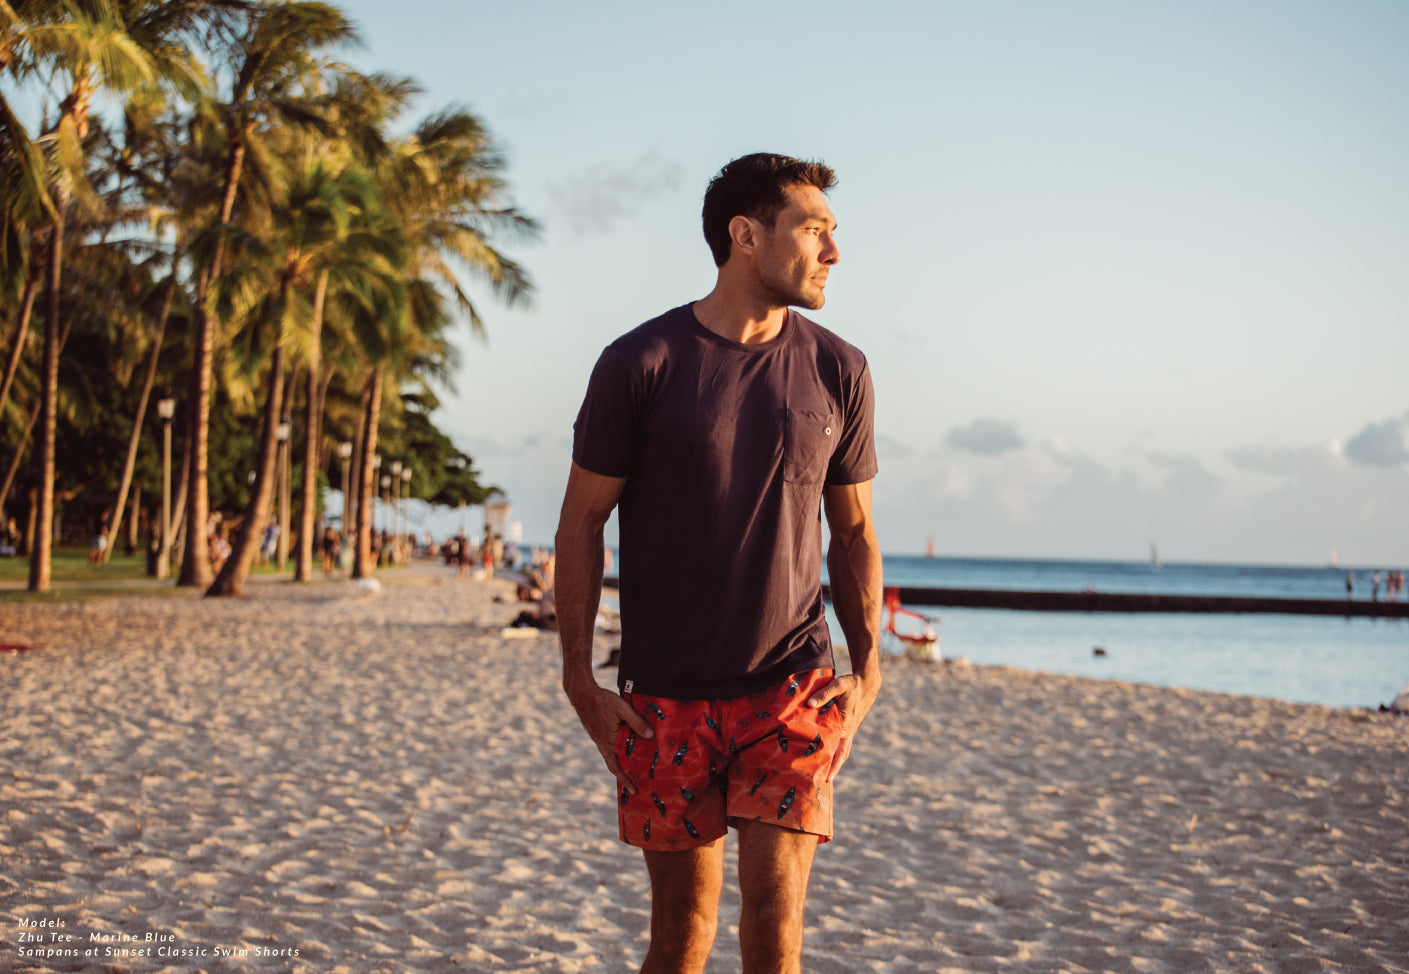 Bamboo T-shirt Marine blue with Sampans at Sunset at sunset walking on the beach